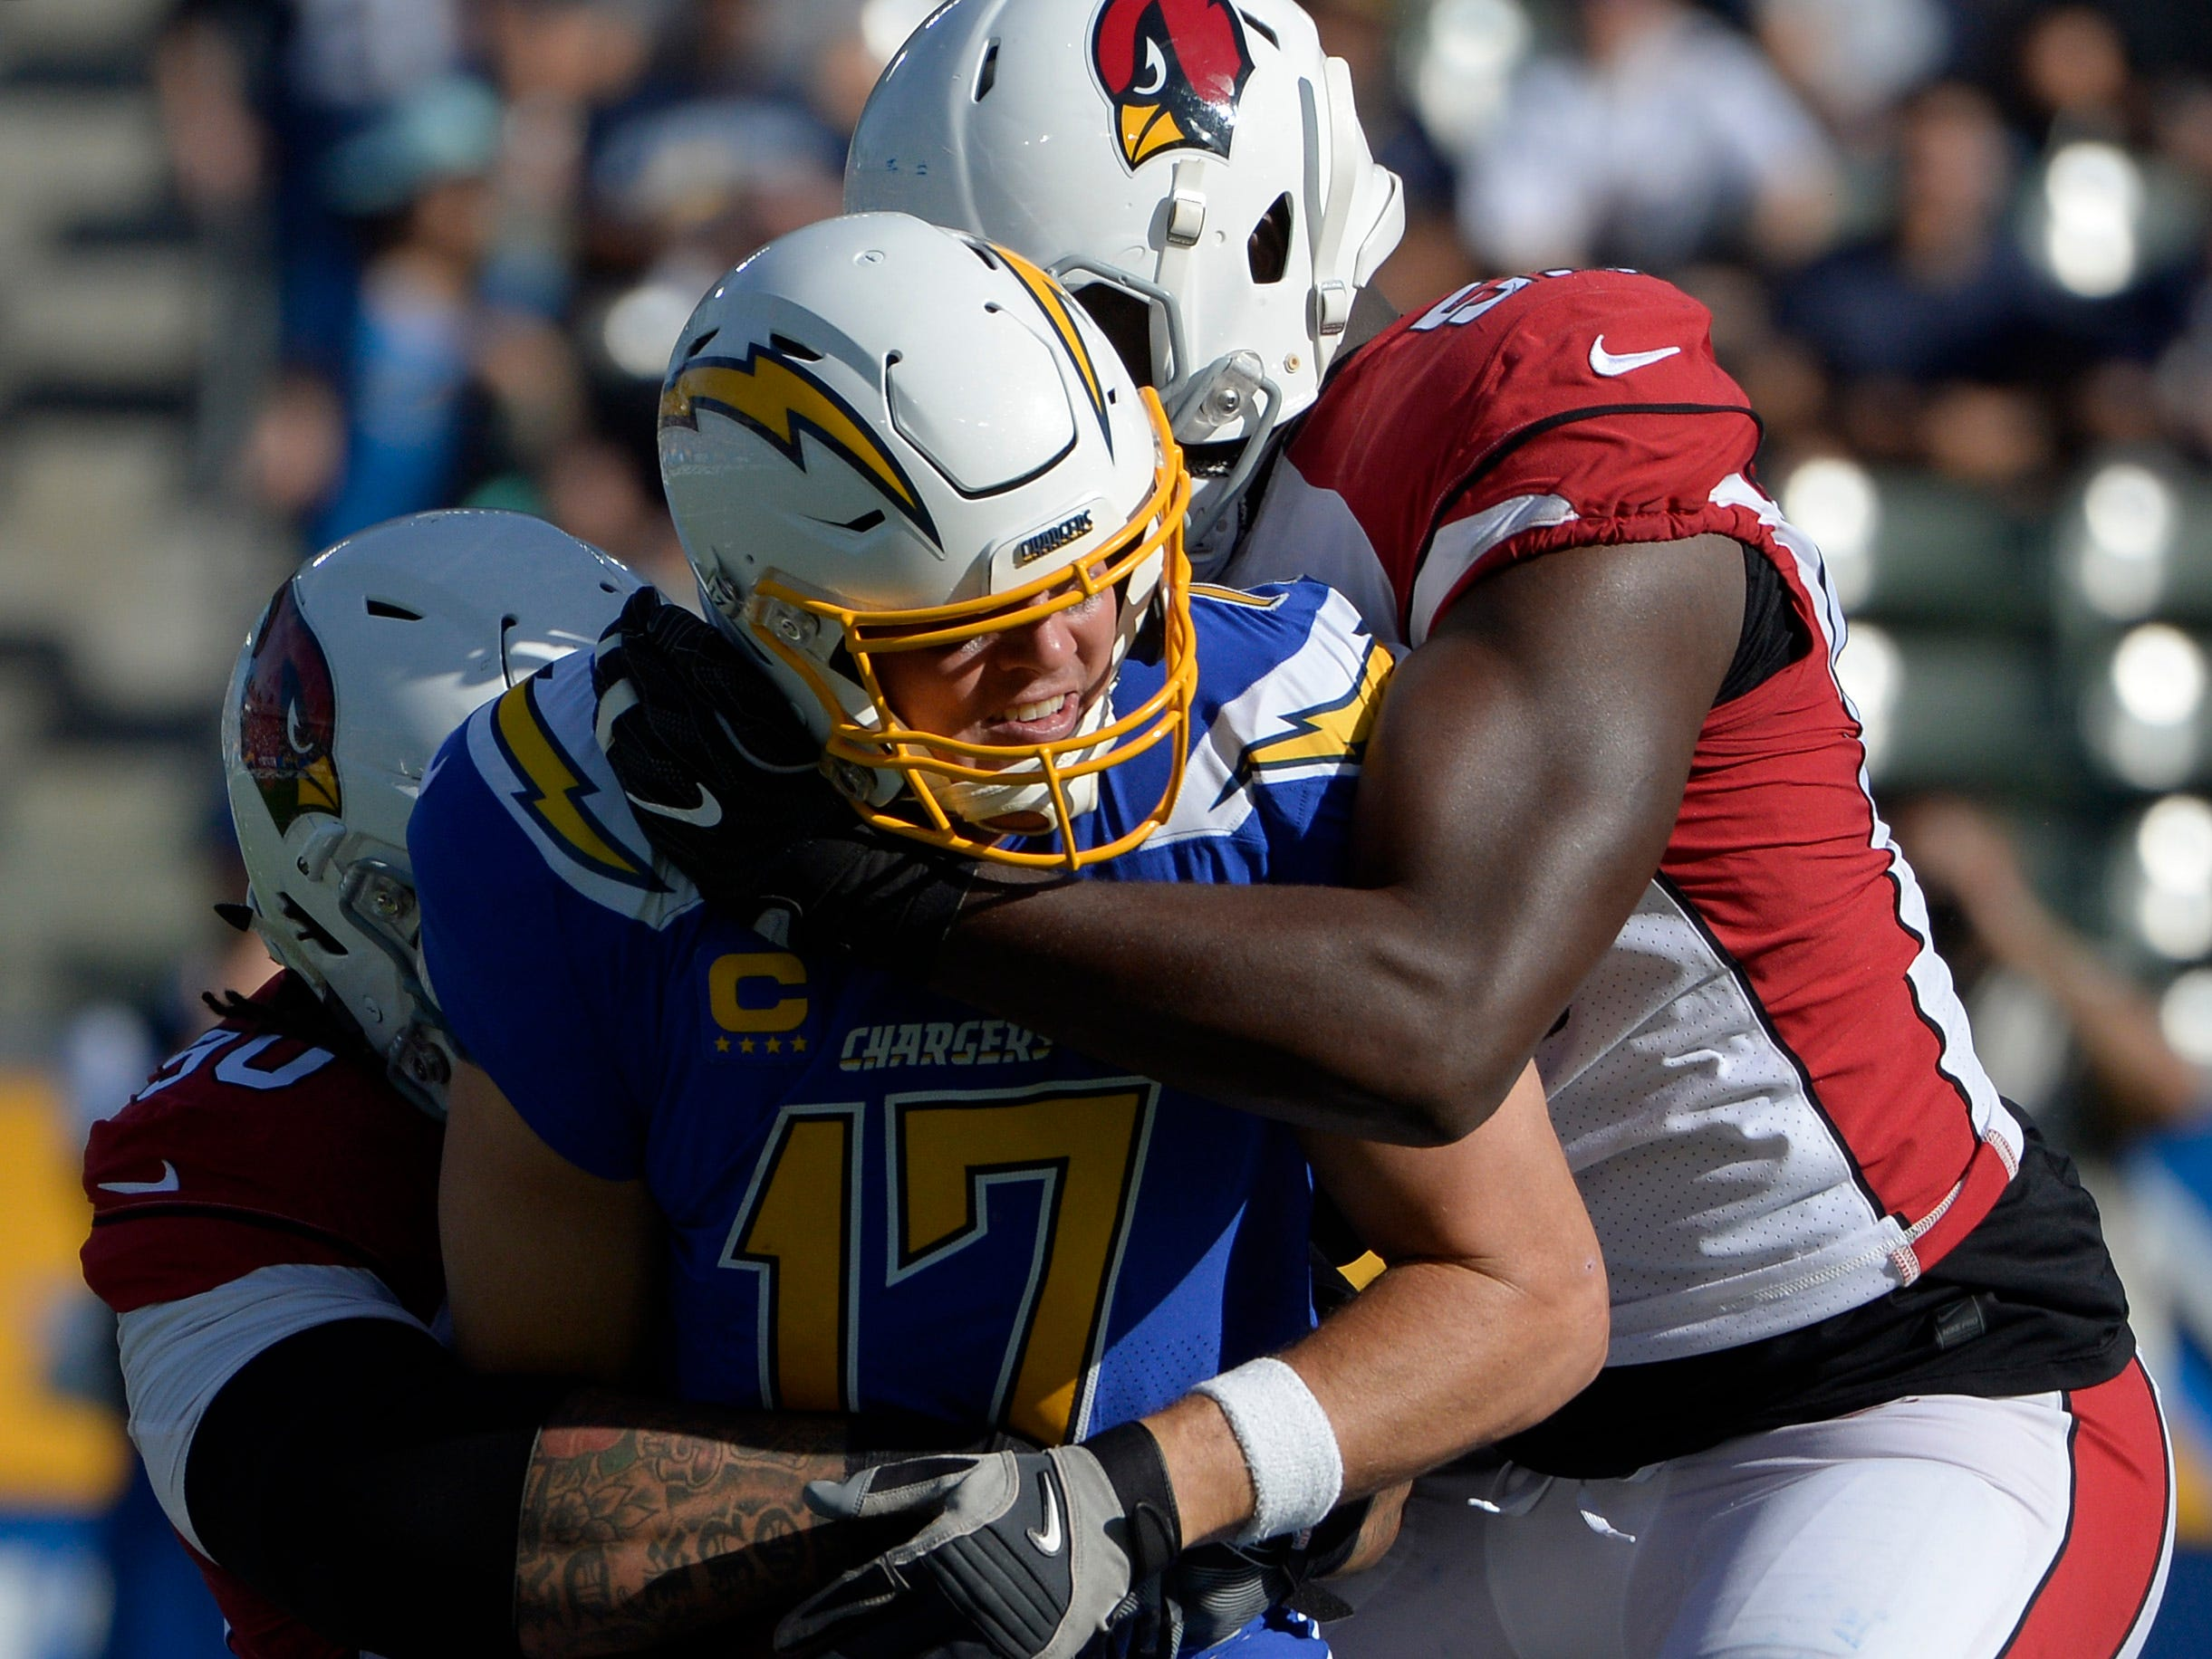 Nov 25, 2018; Carson, CA, USA; Los Angeles Chargers quarterback Philip Rivers (17) is sacked by Arizona Cardinals defensive tackle Robert Nkemdiche (90) and defensive end Chandler Jones (right) at StubHub Center. Mandatory Credit: Jake Roth-USA TODAY Sports